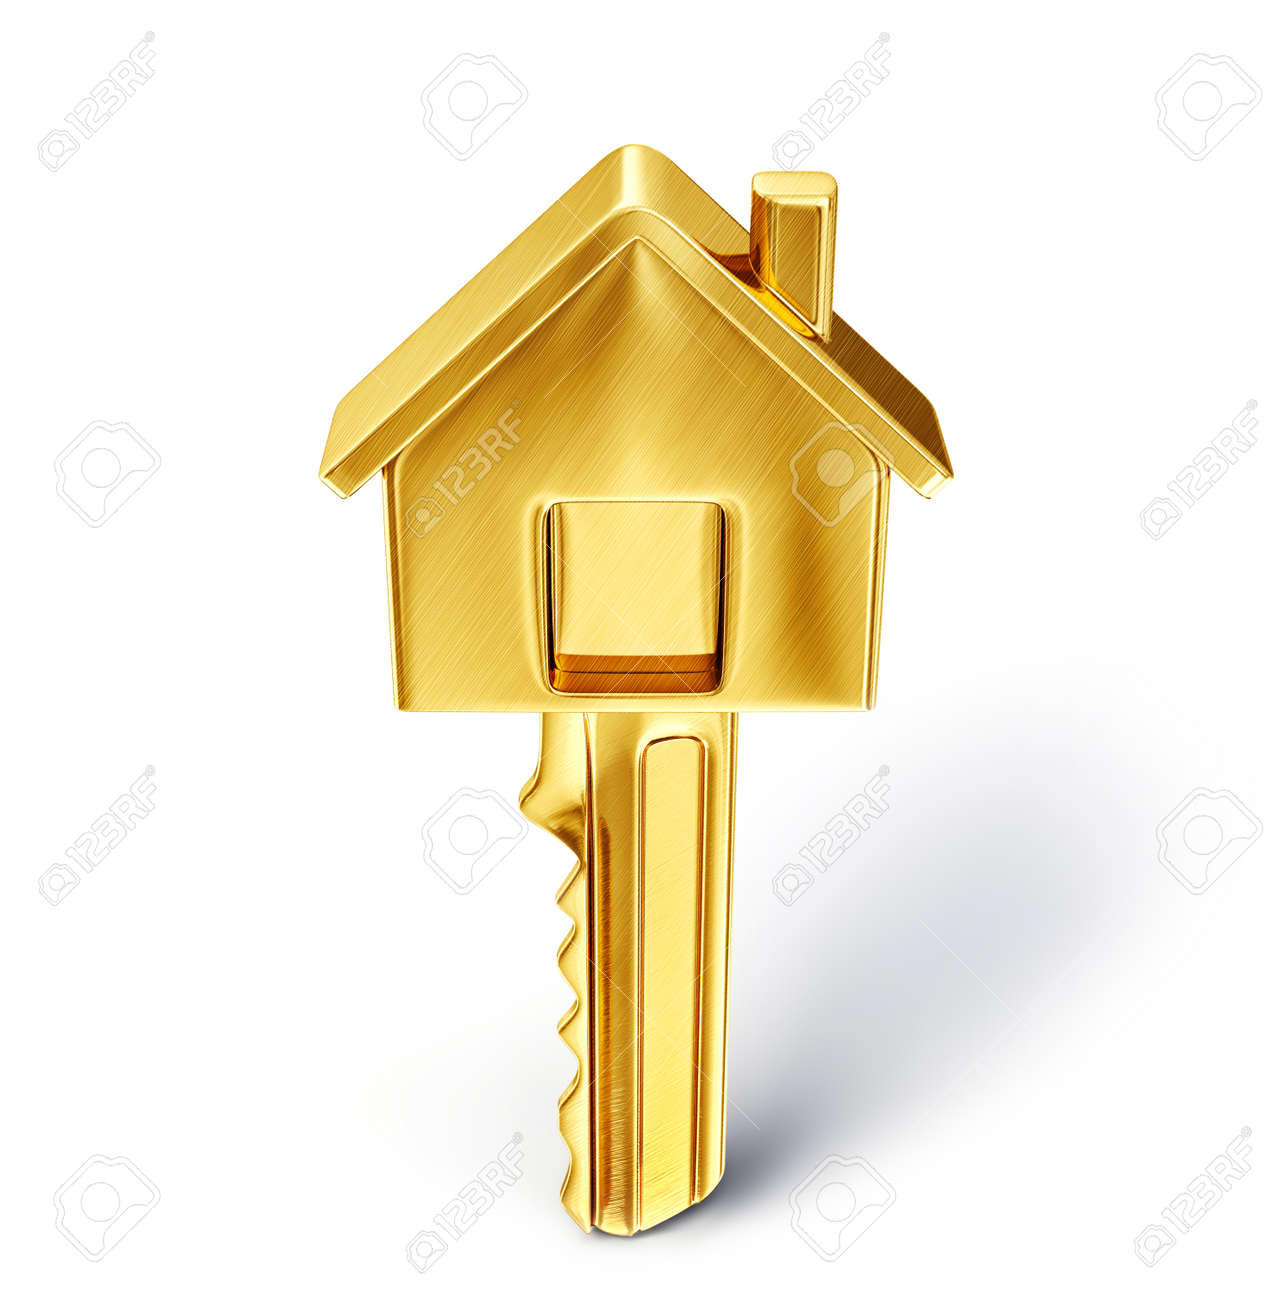 golden key isolated on a white. 3d illustration - 36058686